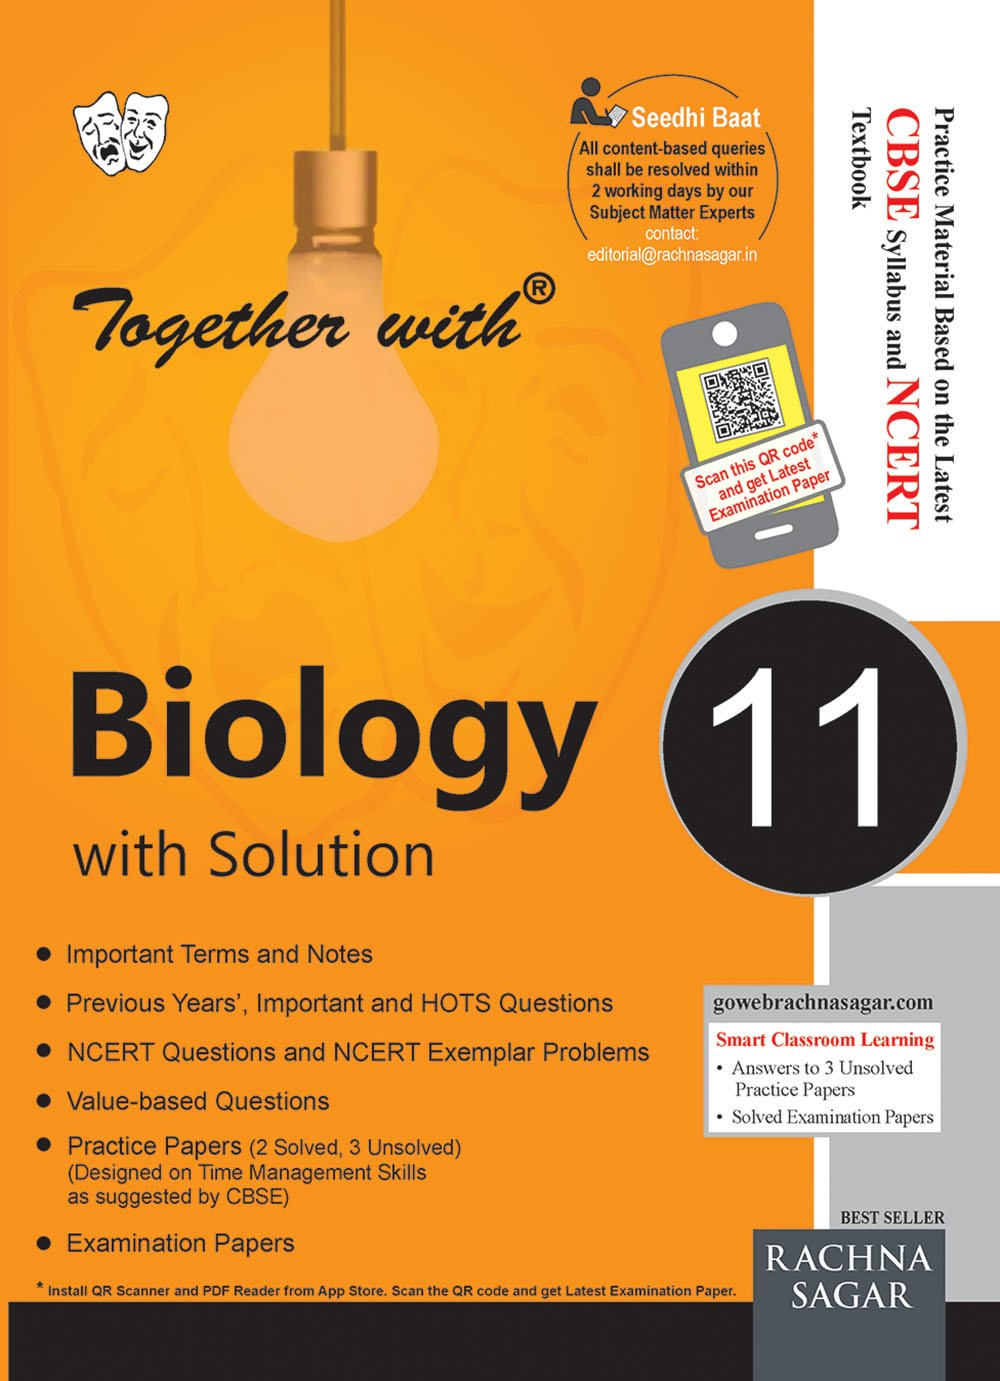 Buy Together With Biology with Solution - 11 (Old Edition